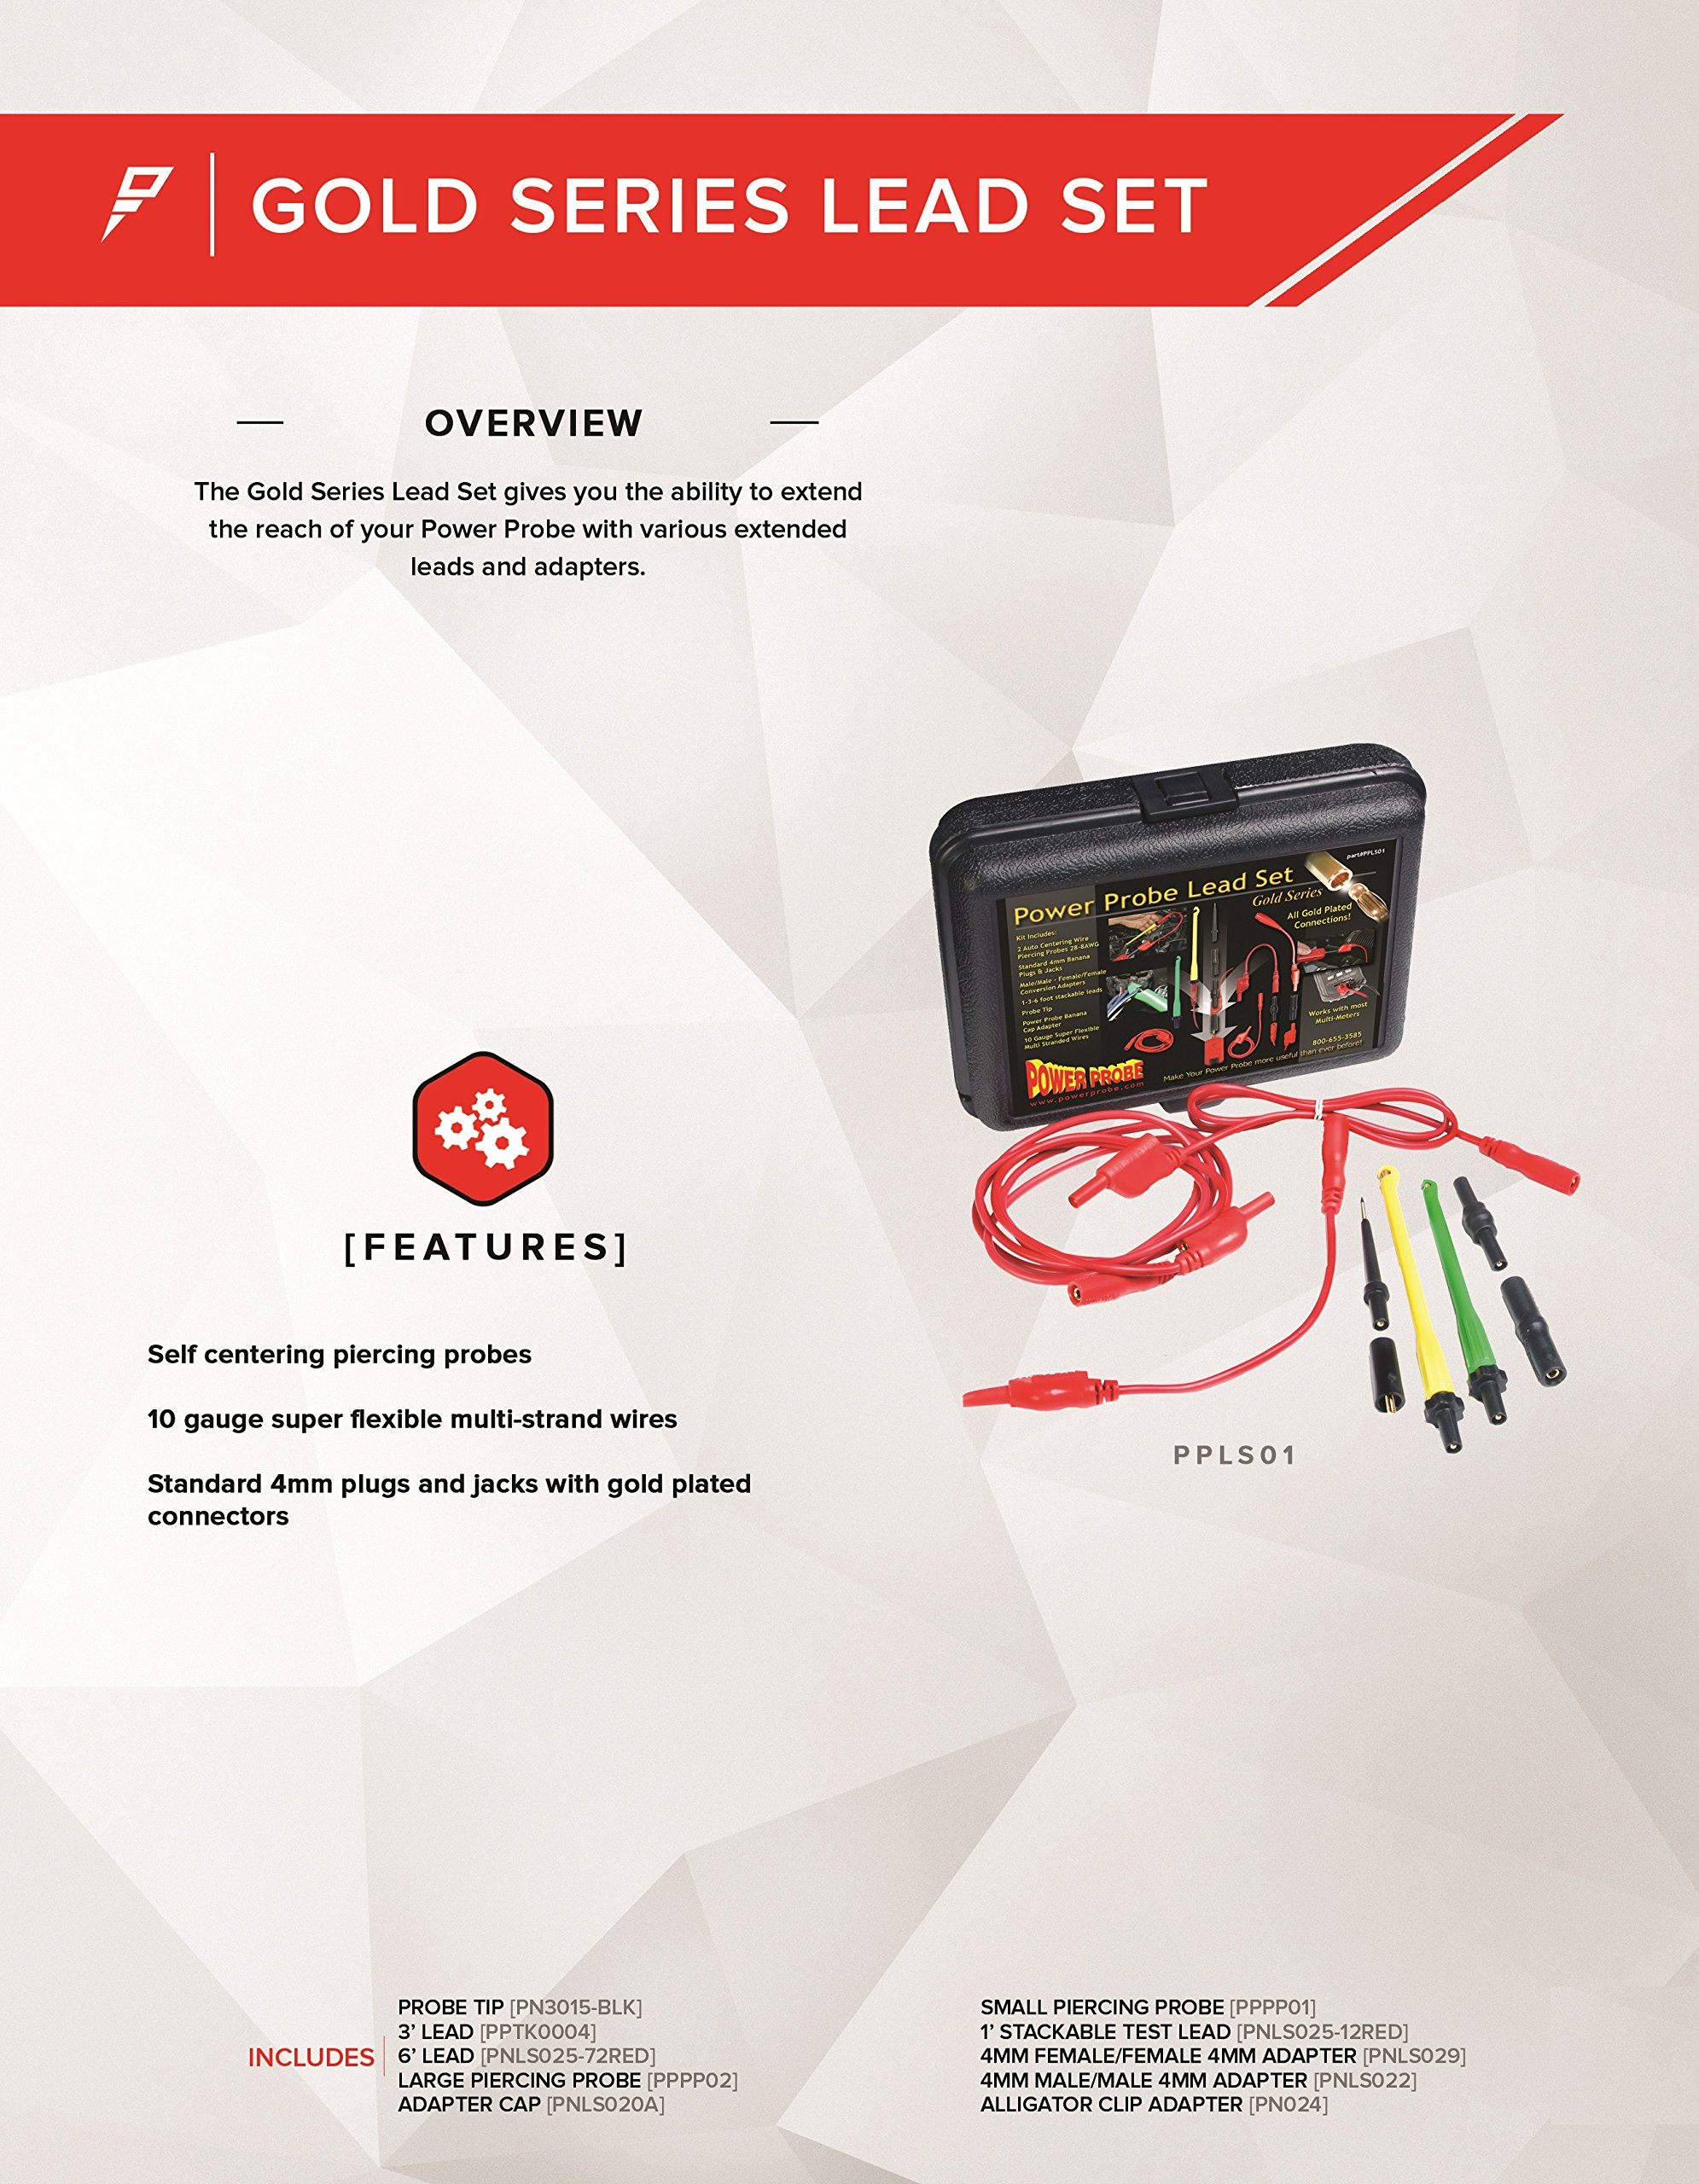 Power Probe Lead Set (PPLS01) [Car Diagnostic Test Tool, Self-Centering Piercing Probes, Super Flexible Multi-Strand Wires, Gold Plated Connectors] by Power Probe (Image #2)